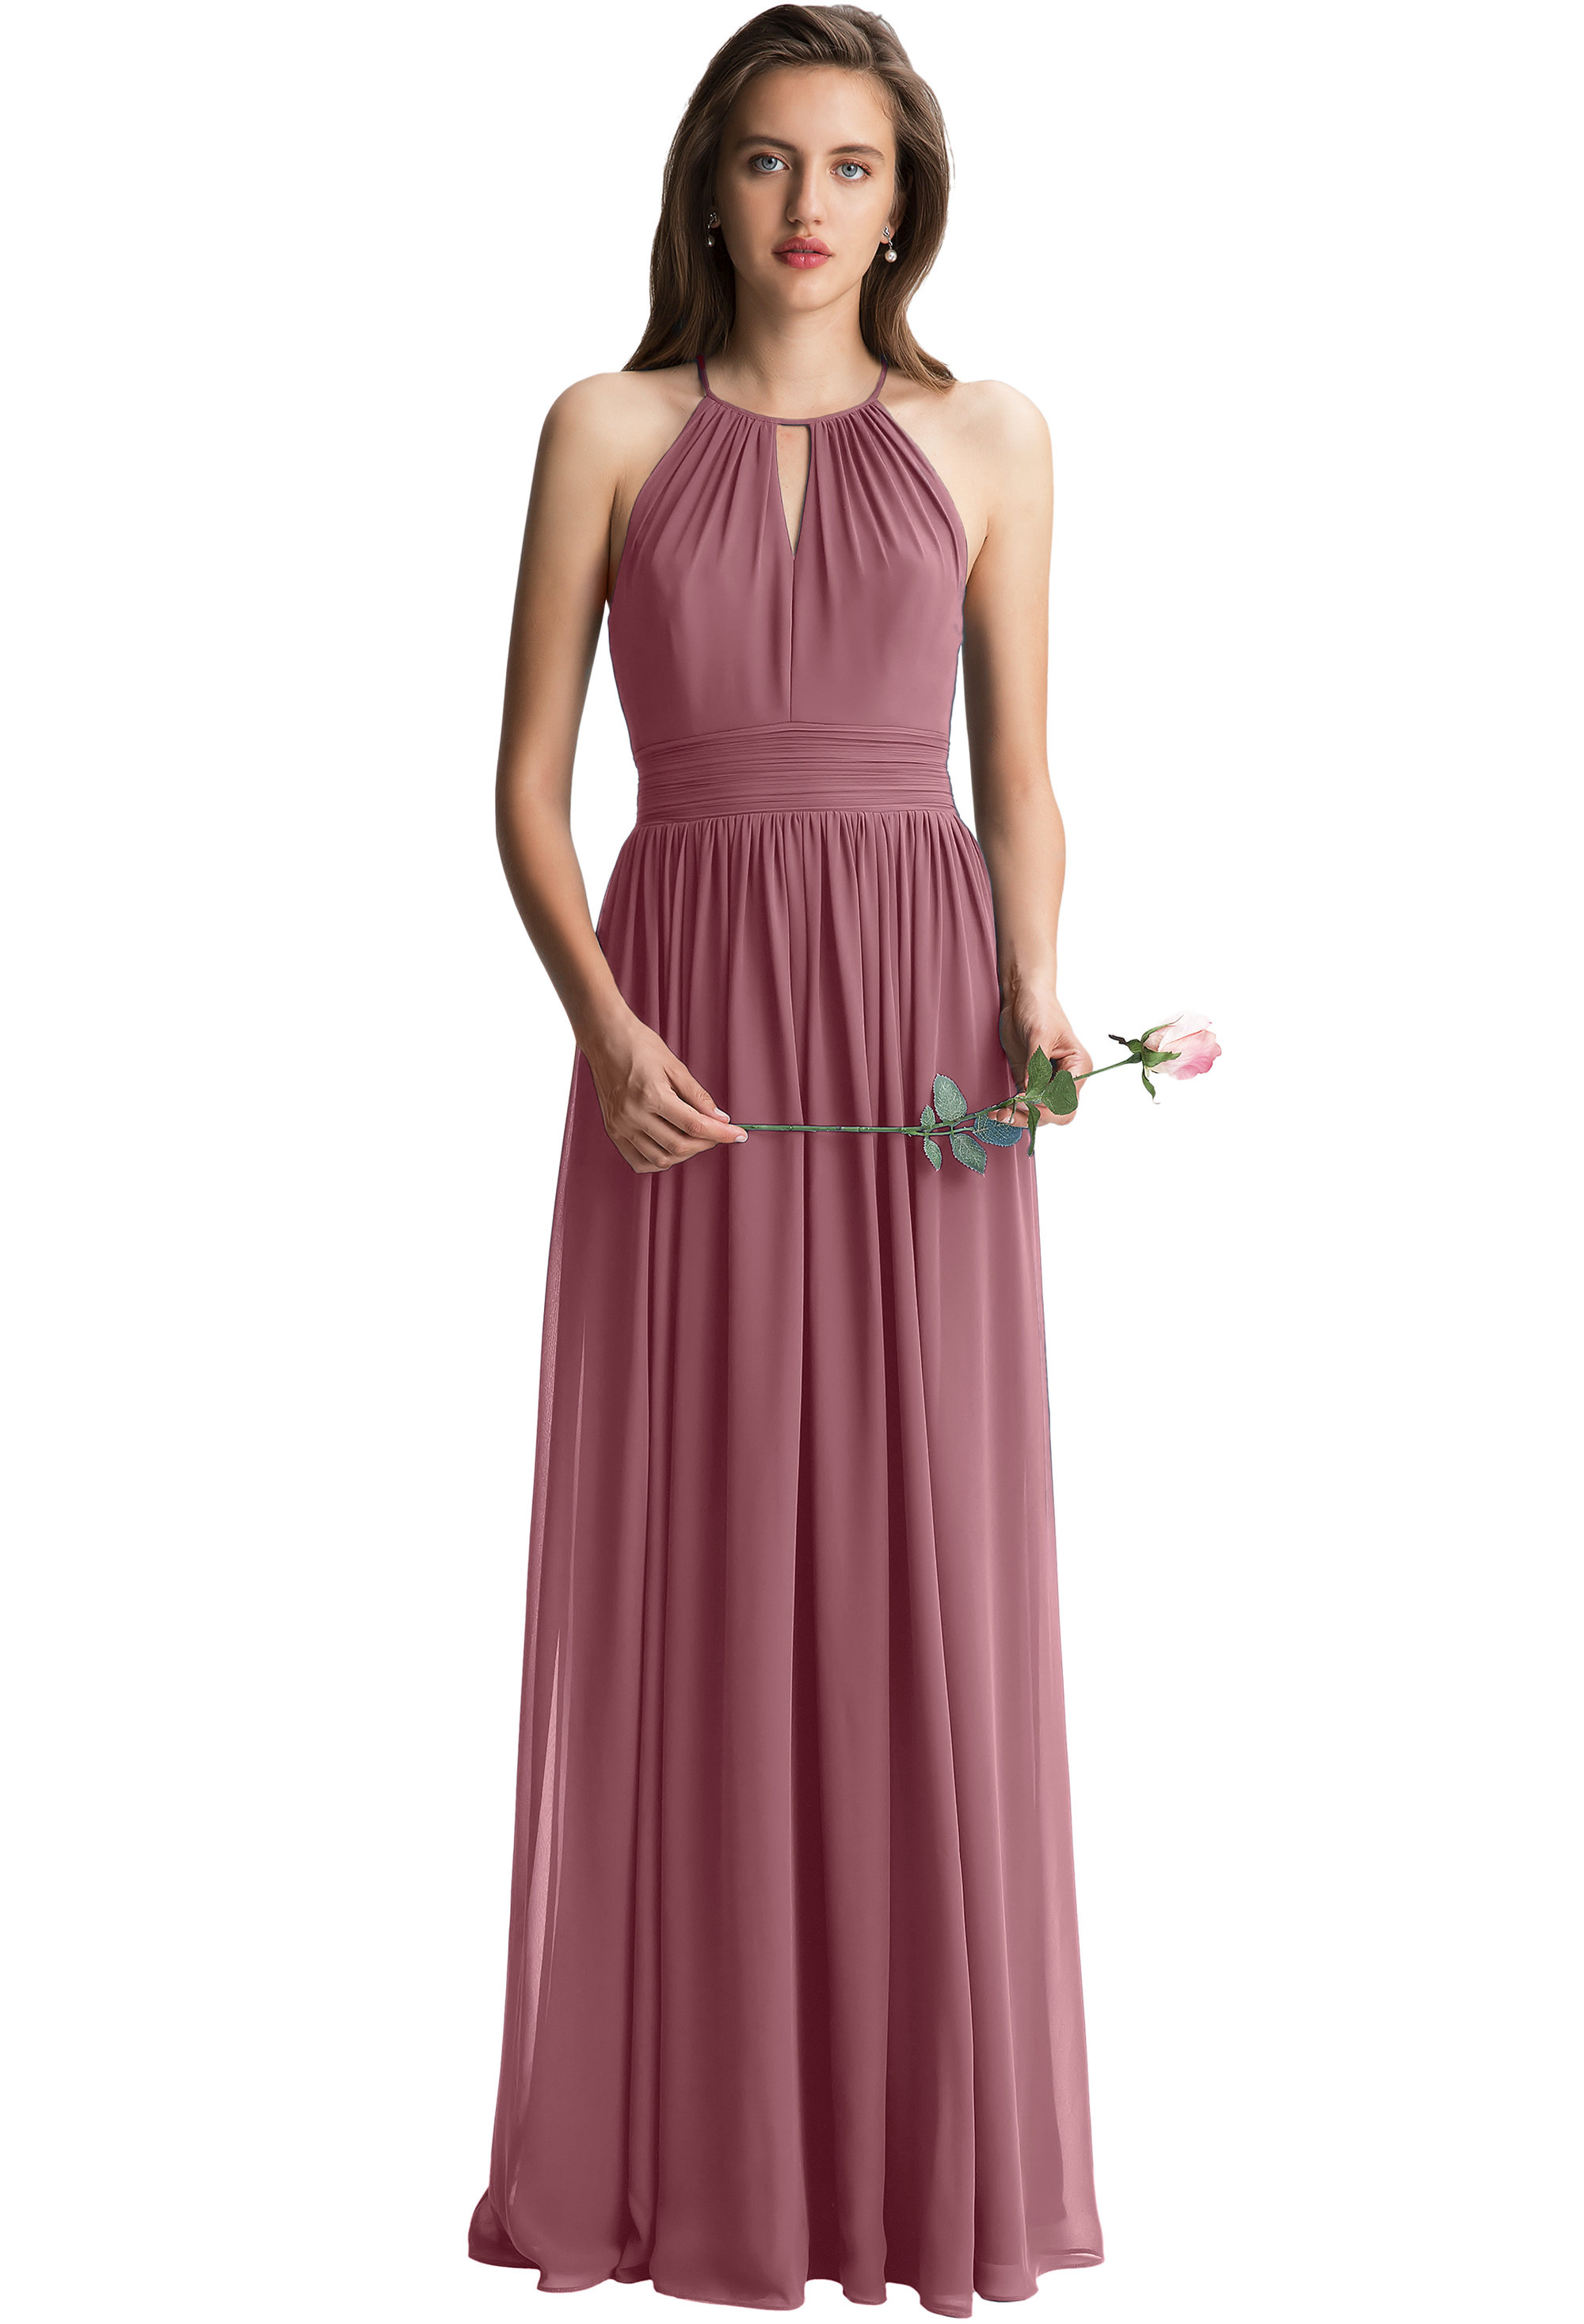 Bill Levkoff ROSEWOOD Chiffon Keyhole A-line gown, $150.00 Front